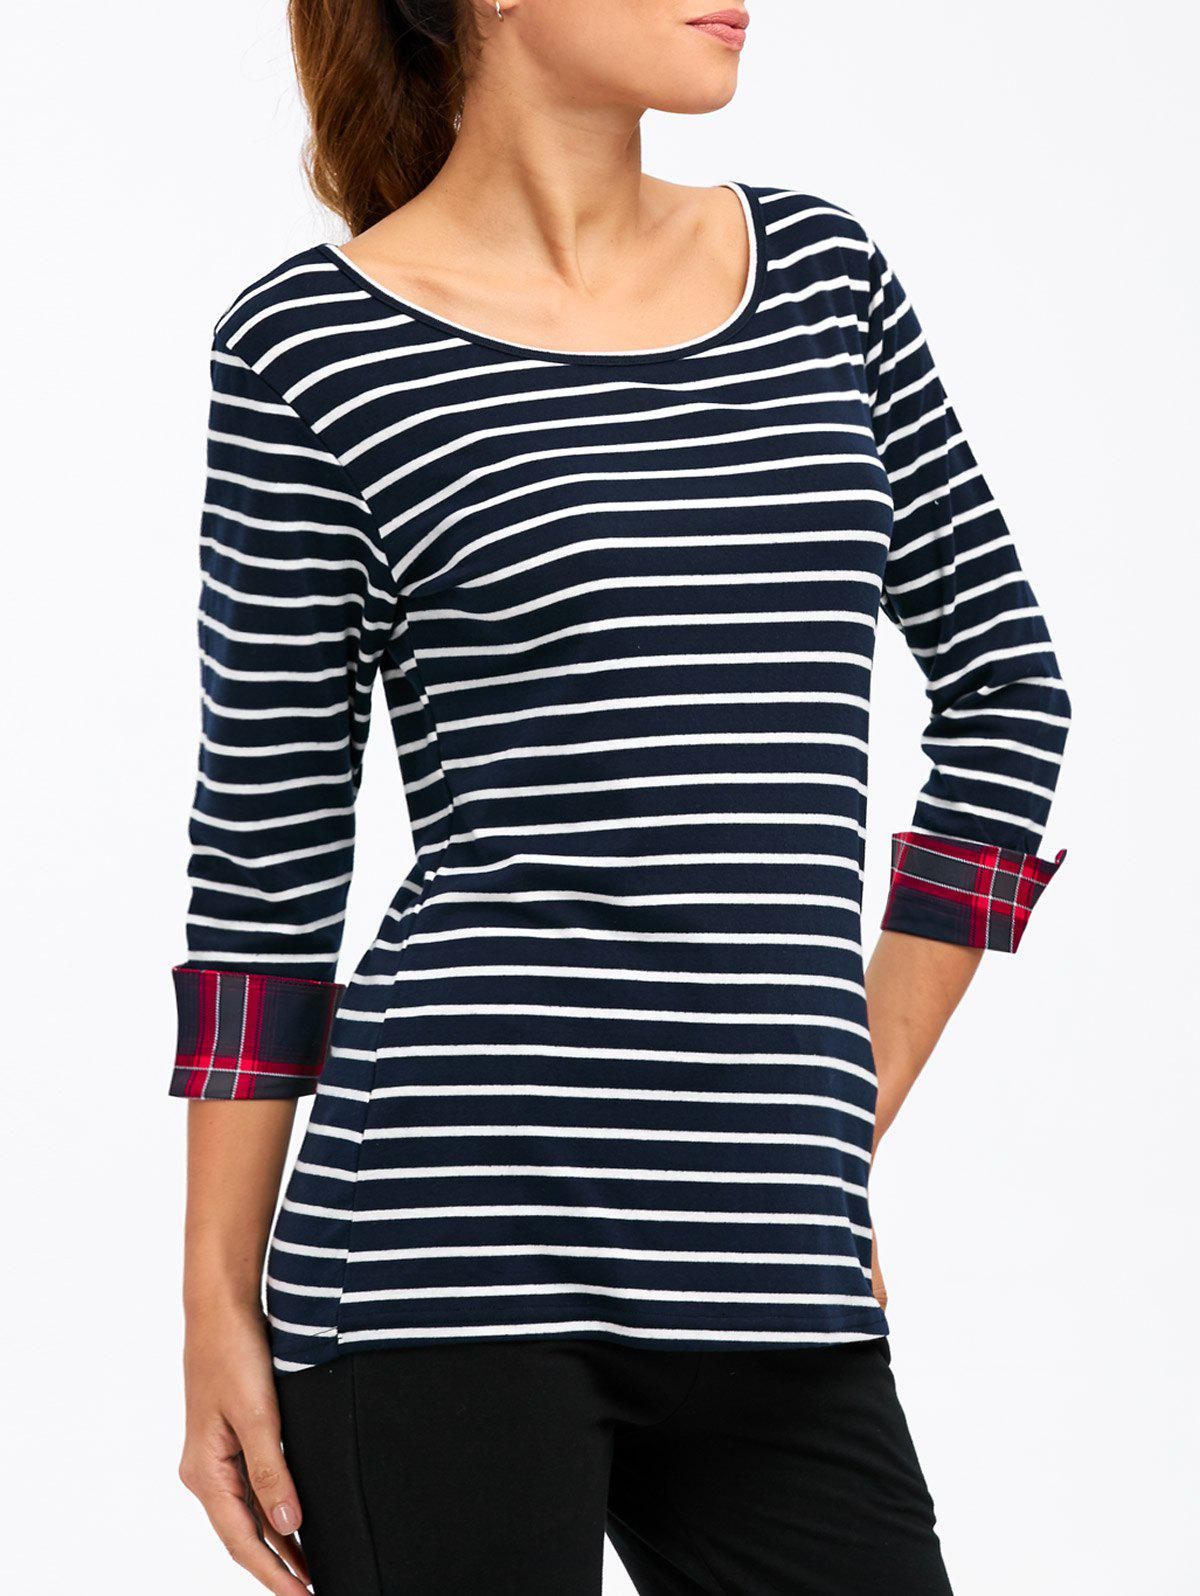 Striped Cuffed Slimming T-shirt - Bleu Foncé S